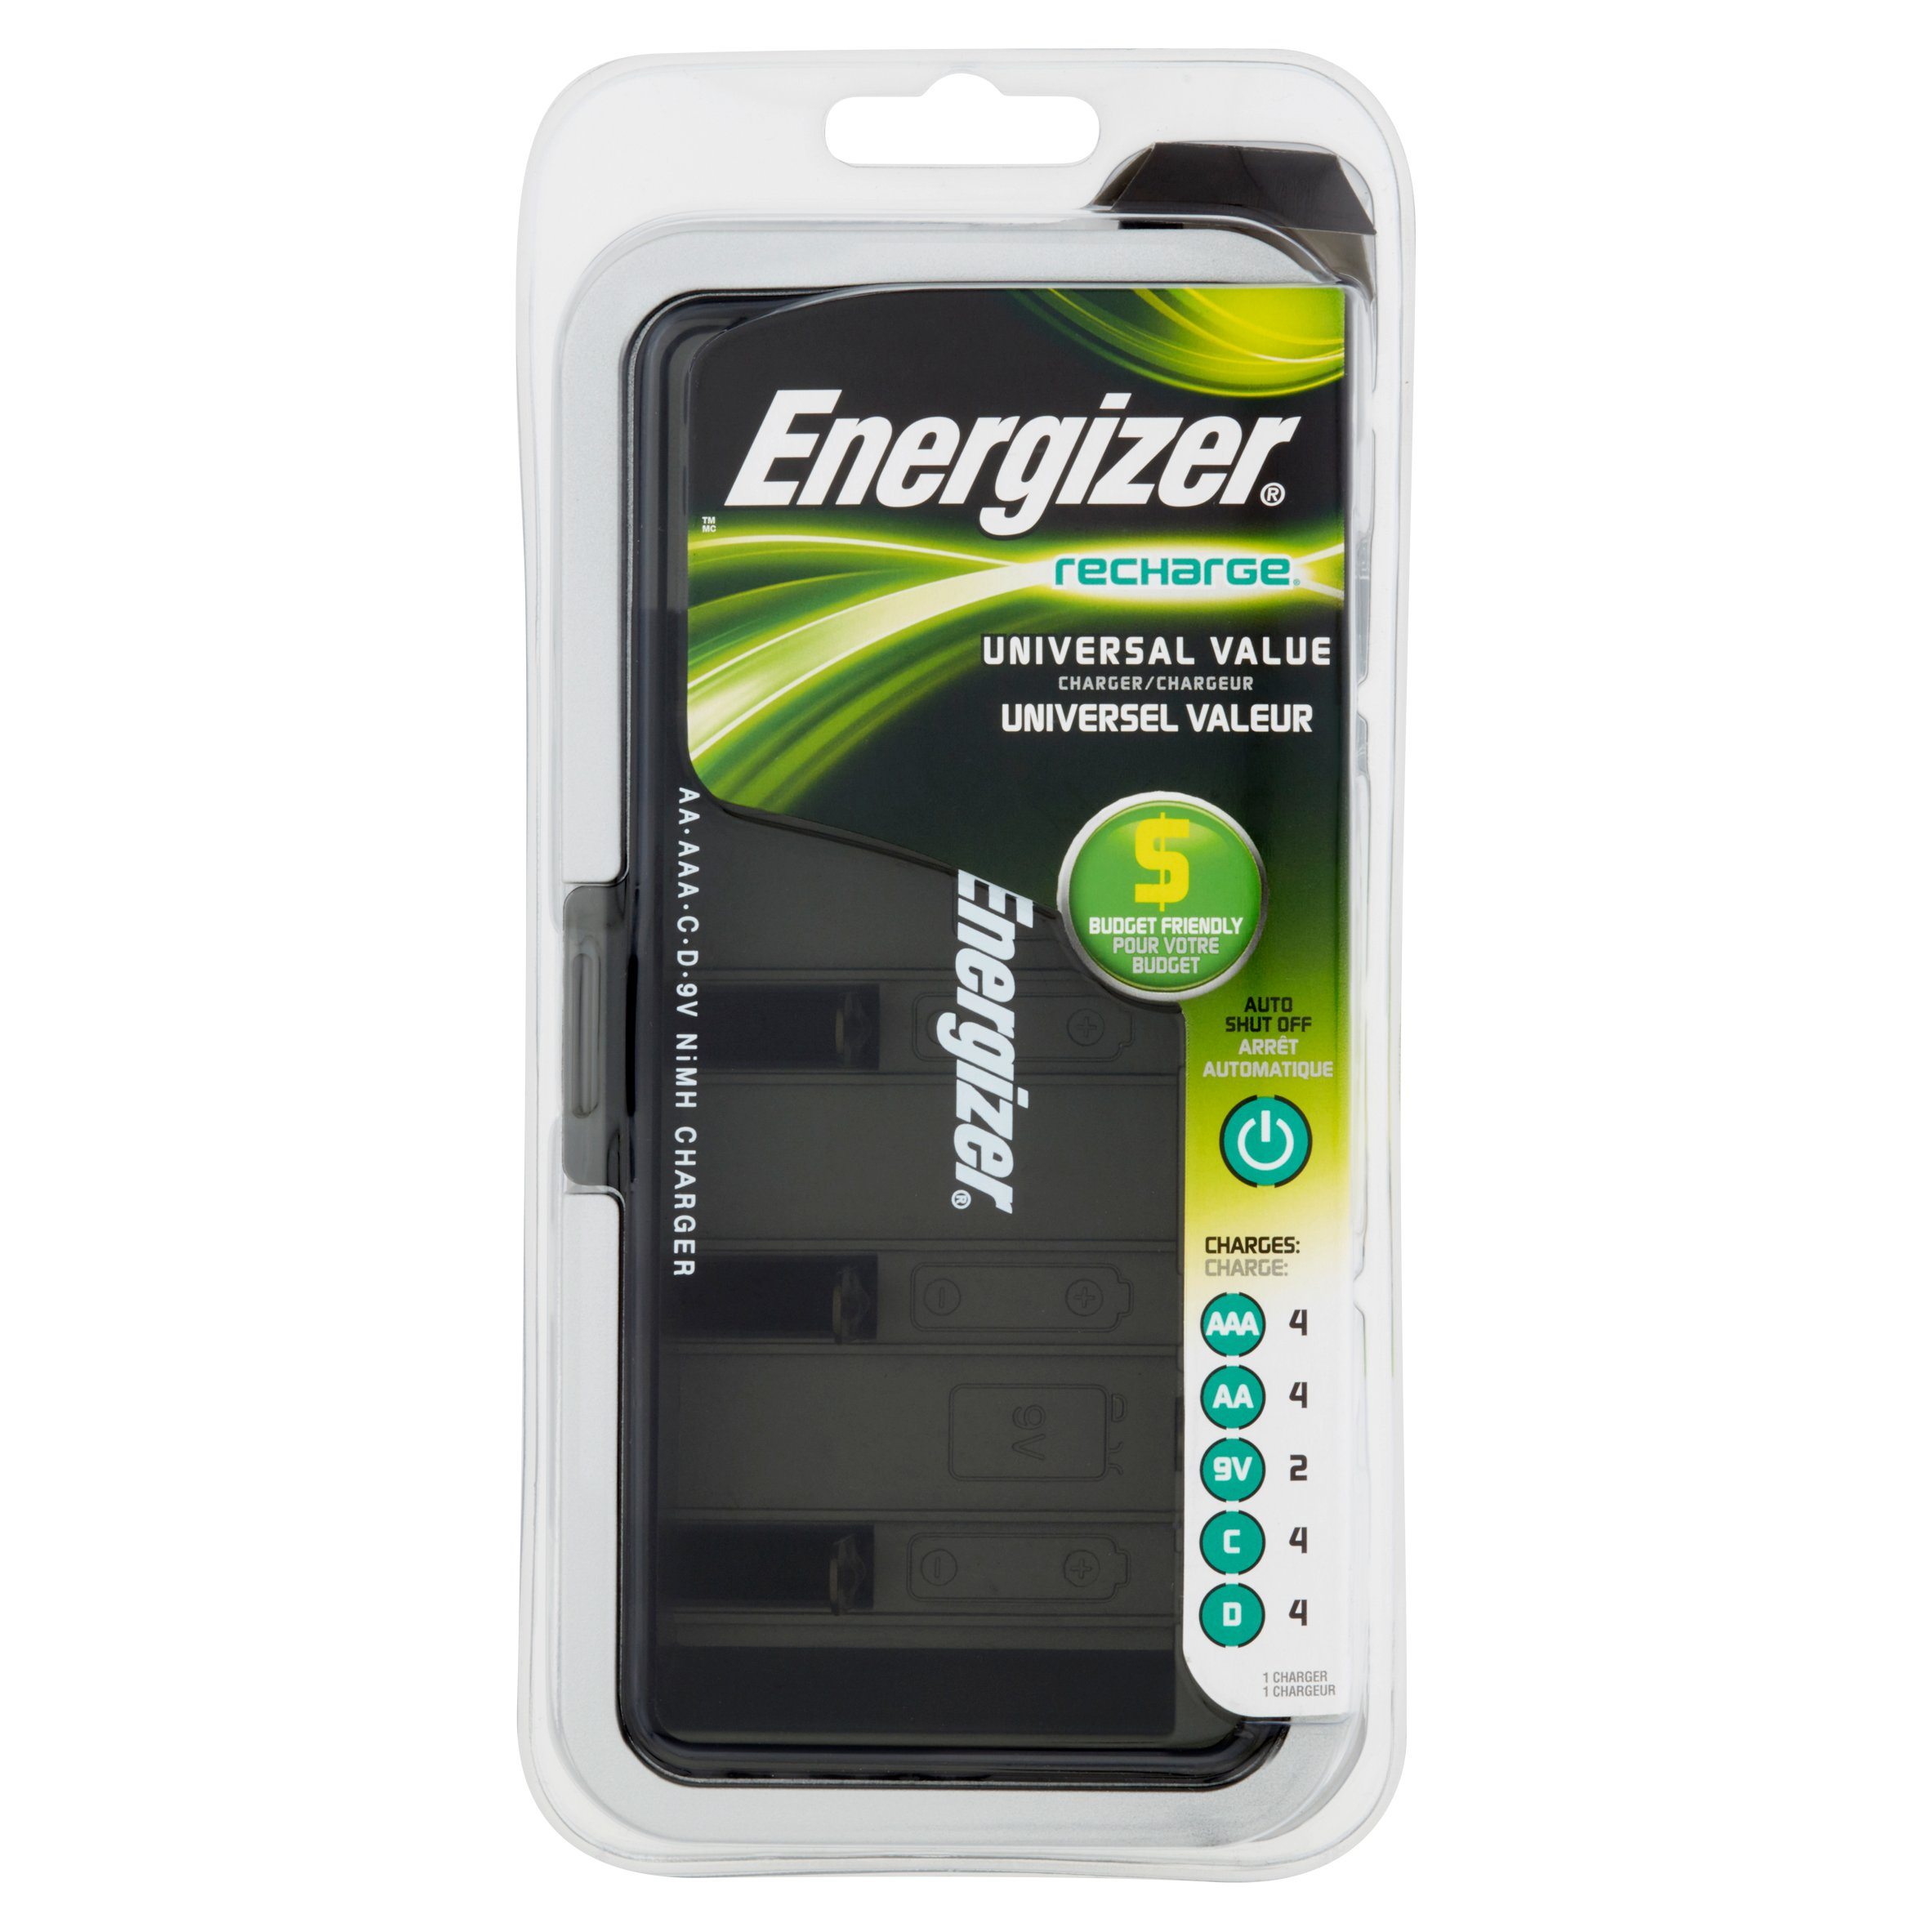 Nimh battery charger (chvc3e) energizer technical information.